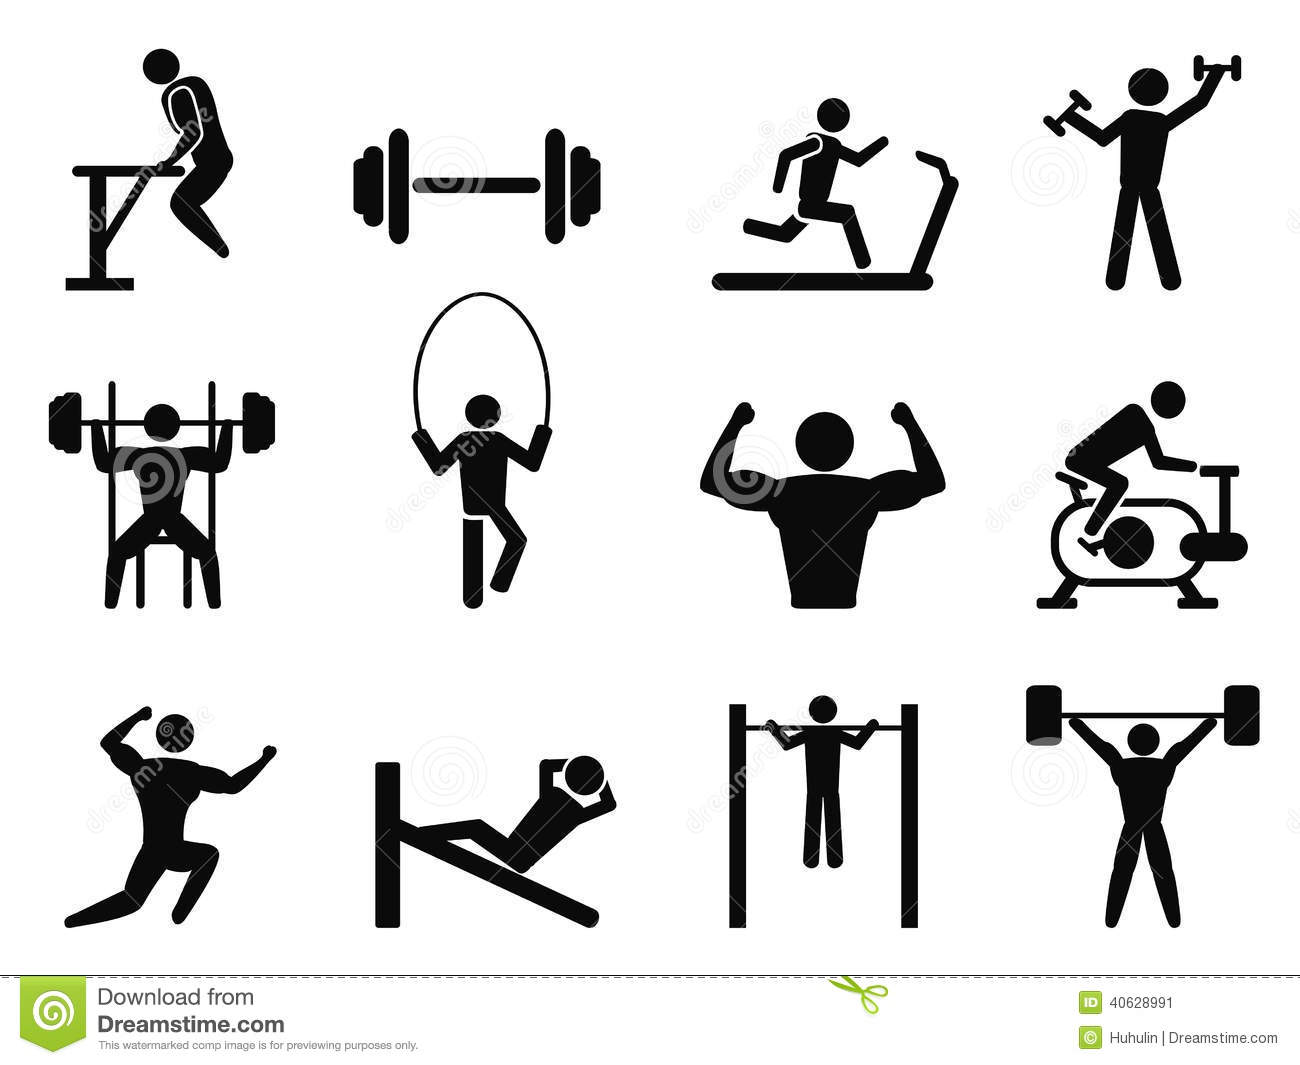 Isolated Gymnasium and Body Building icons from white background.